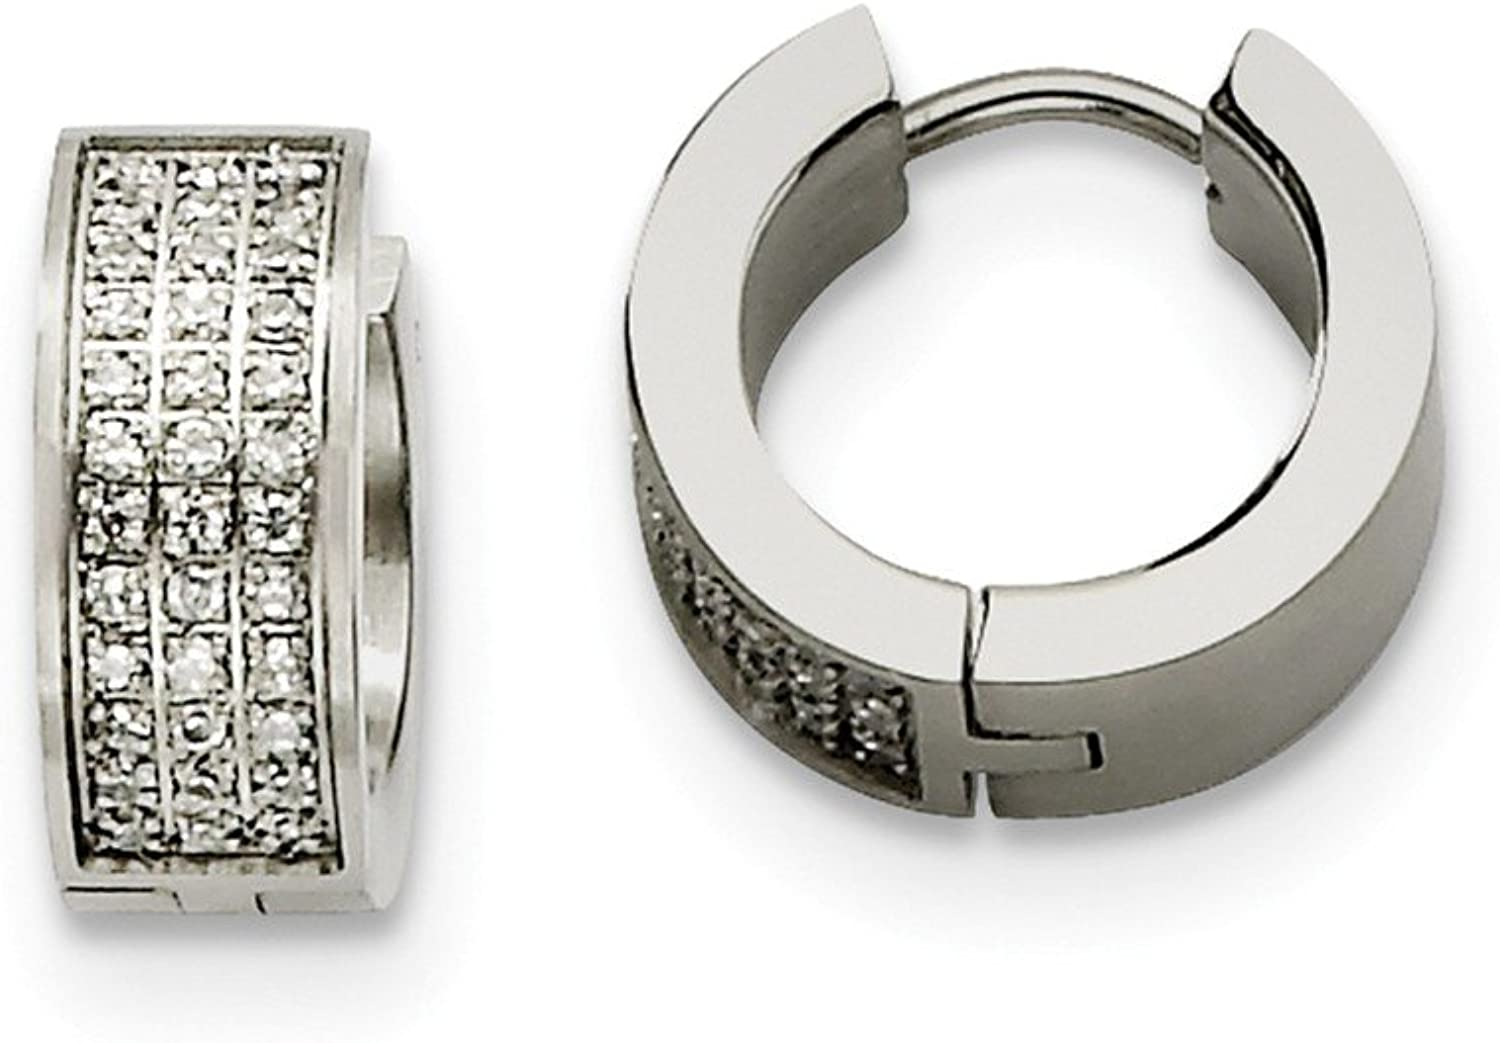 Beautiful Stainless Steel CZ Stones Brushed & Polished Hinged Hoop Earrings